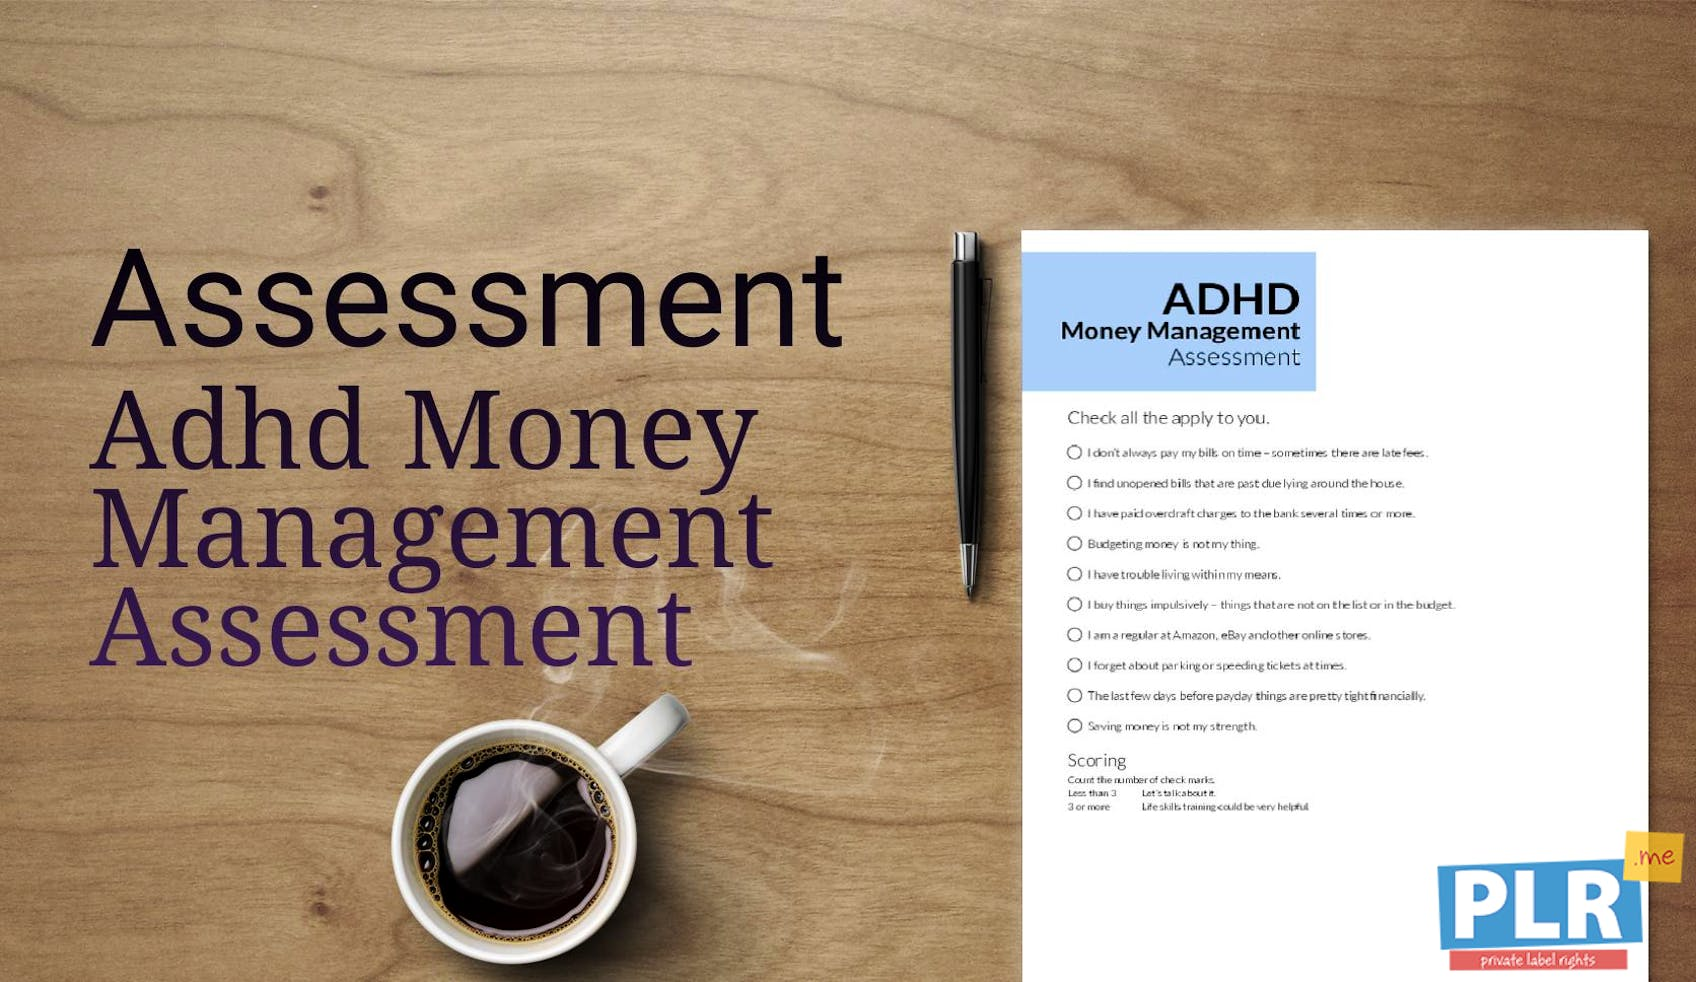 ADHD Money Management Assessment